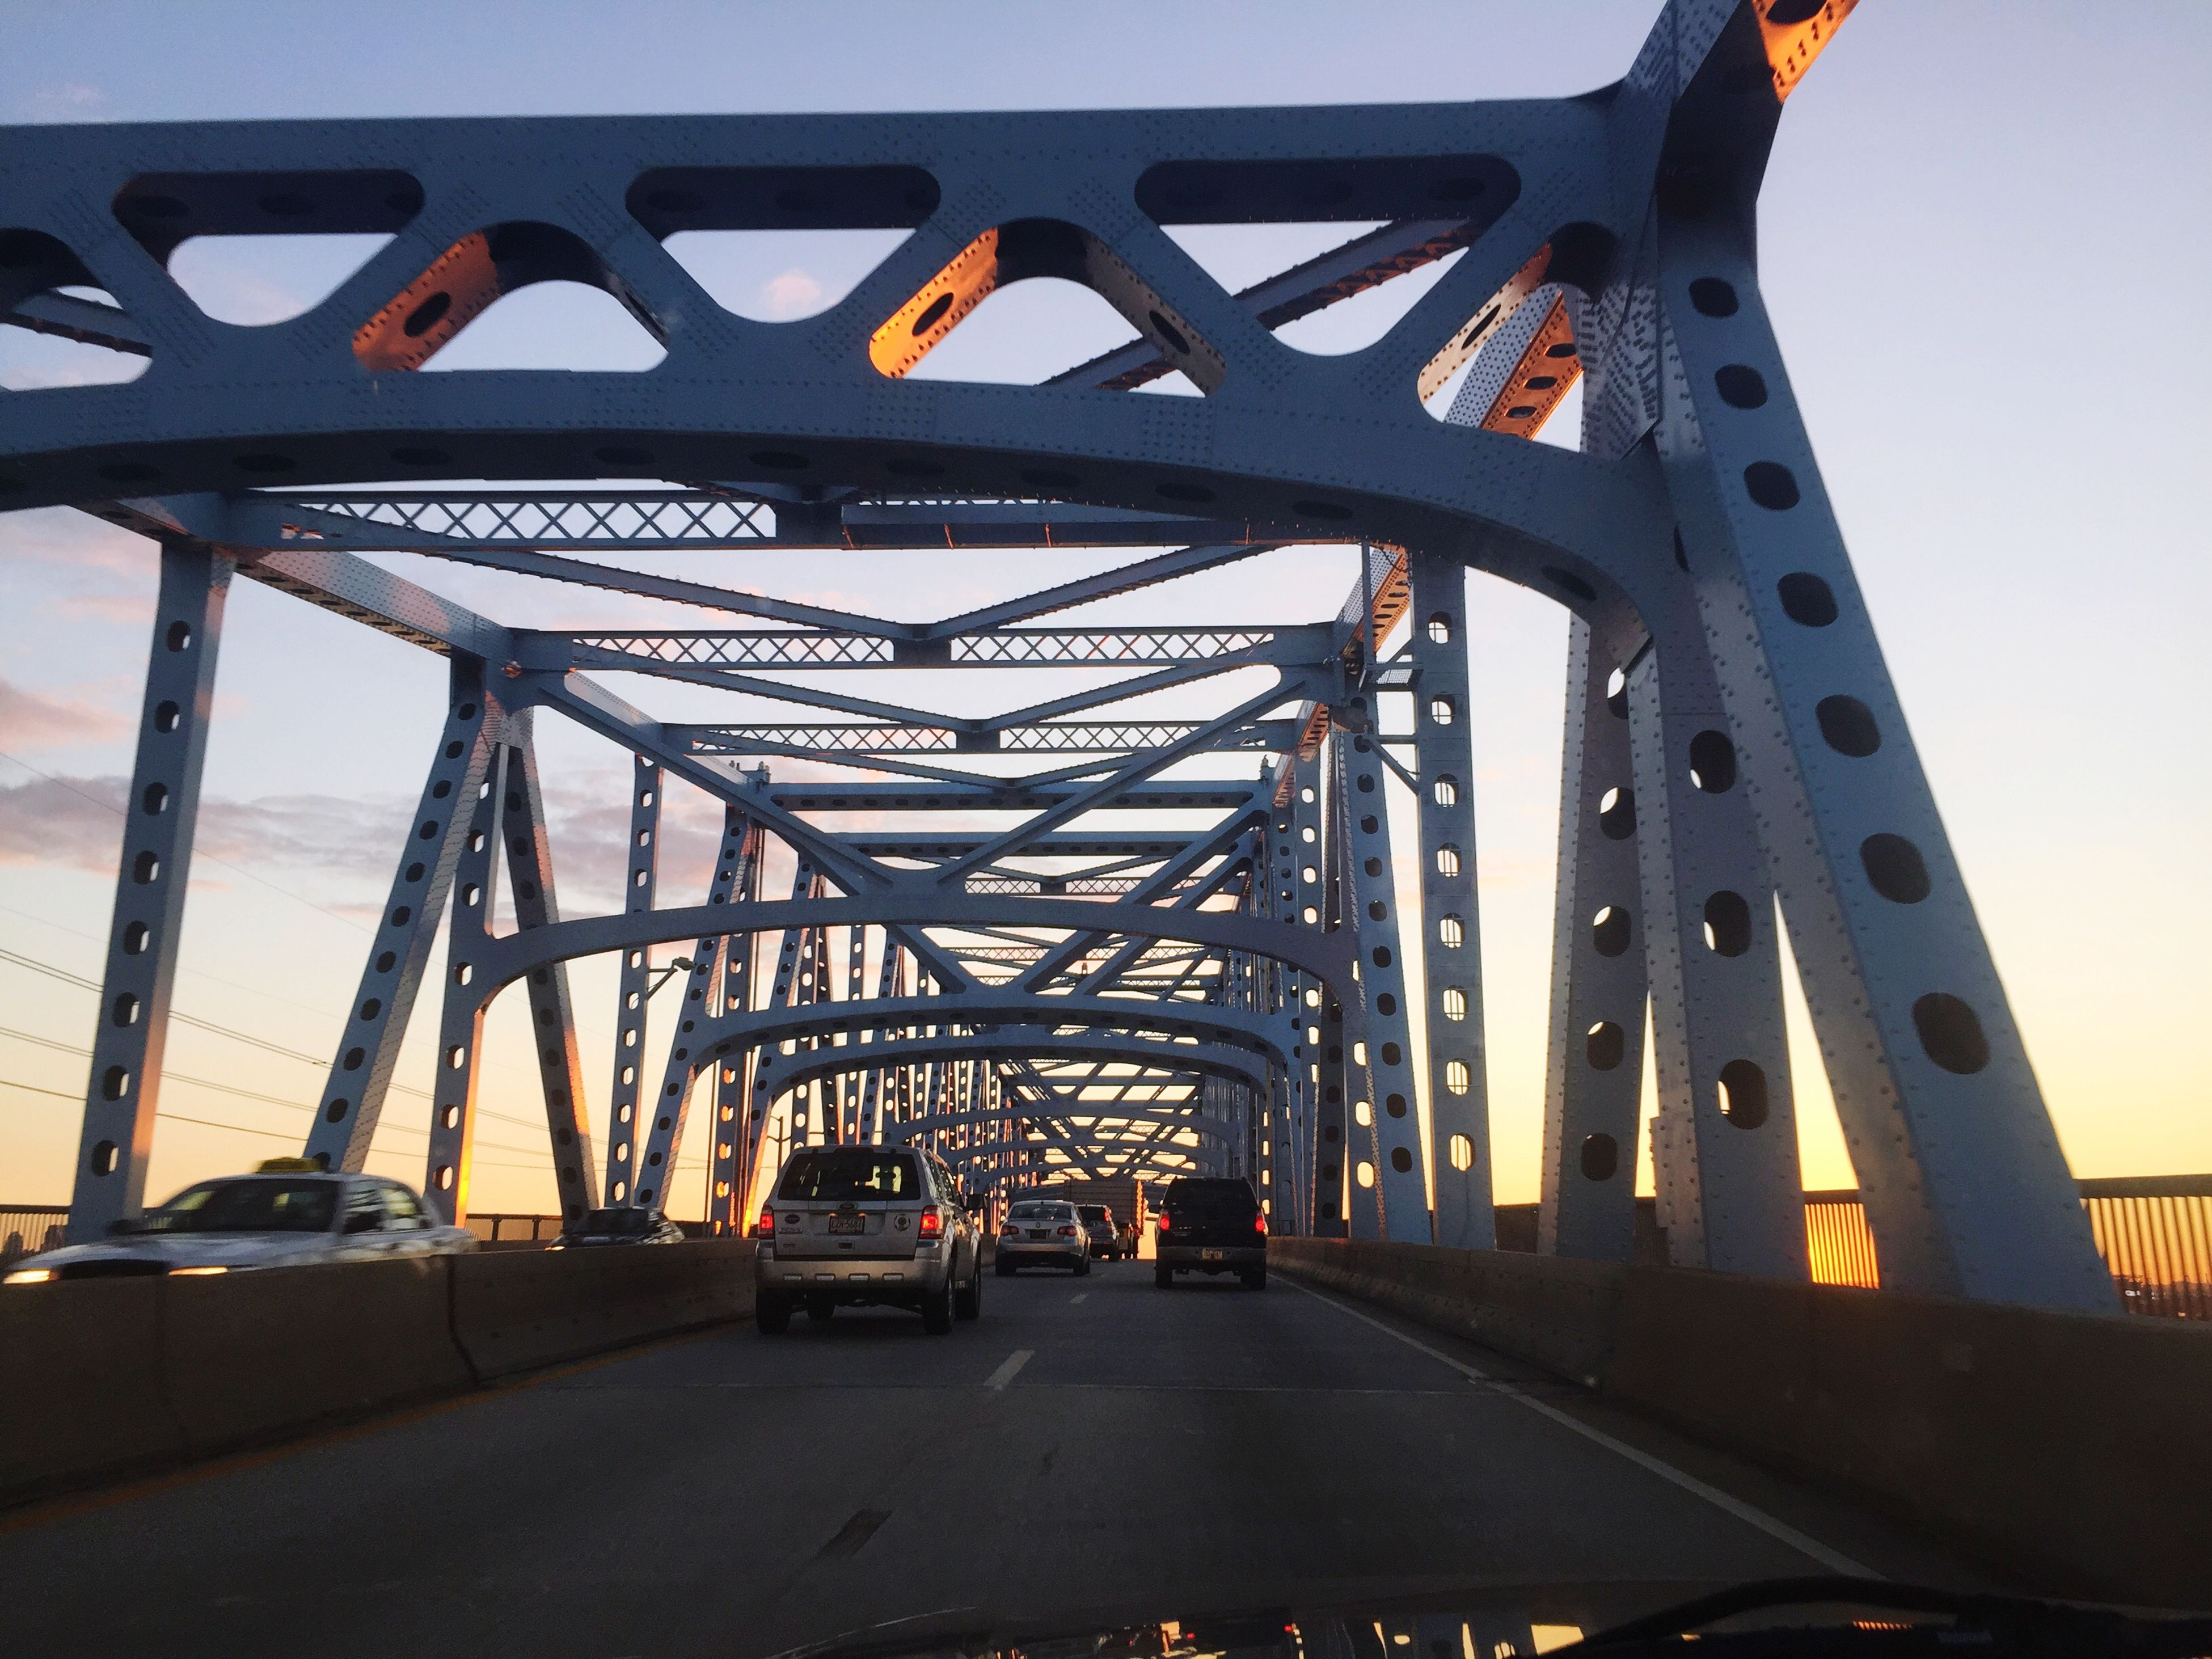 transportation, bridge - man made structure, connection, car, land vehicle, engineering, built structure, mode of transport, the way forward, road, architecture, bridge, sky, diminishing perspective, road marking, travel, clear sky, street, metal, vanishing point